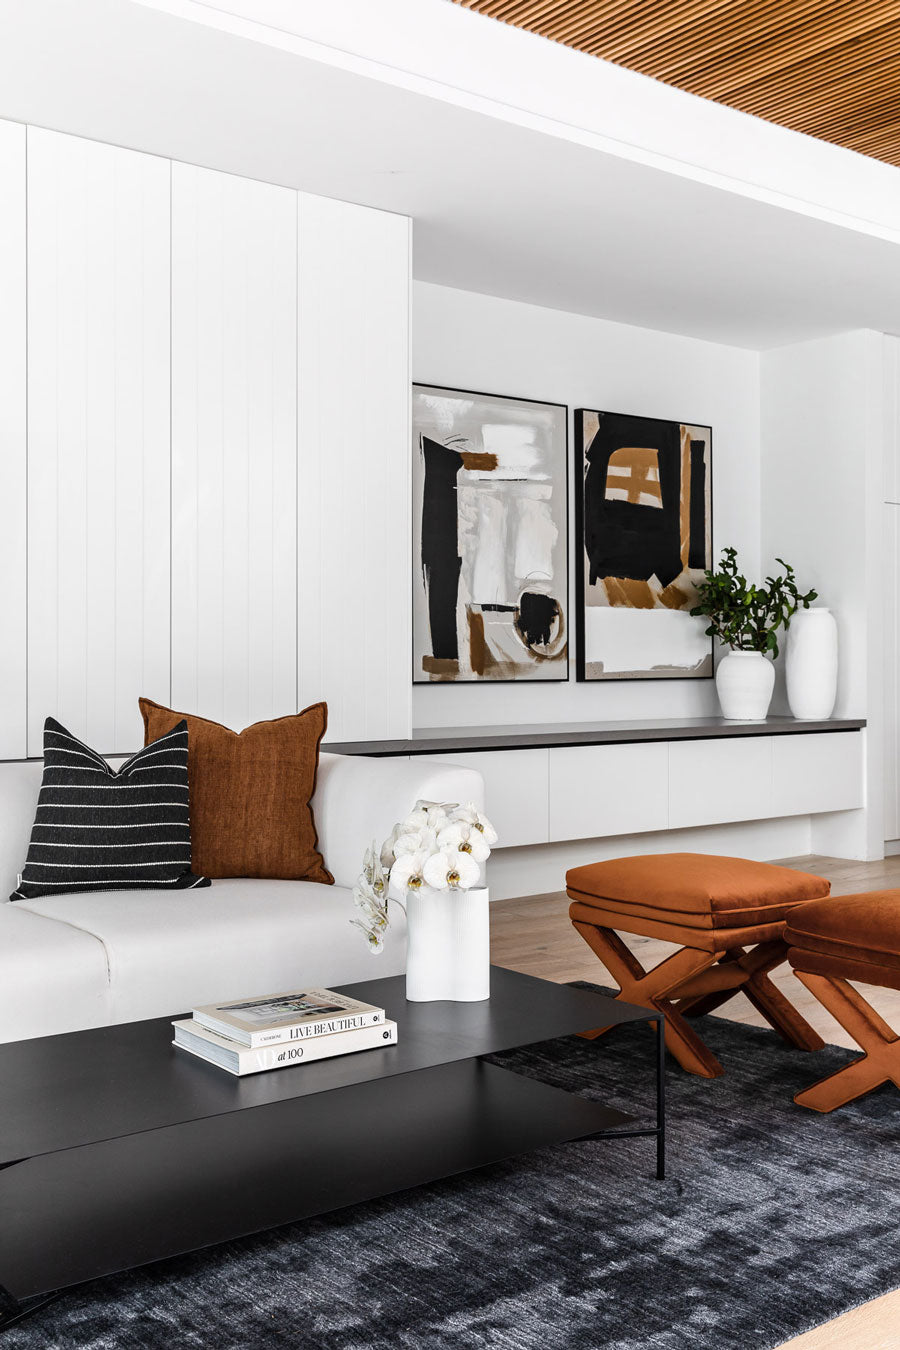 Room styled by Huntley+ Co